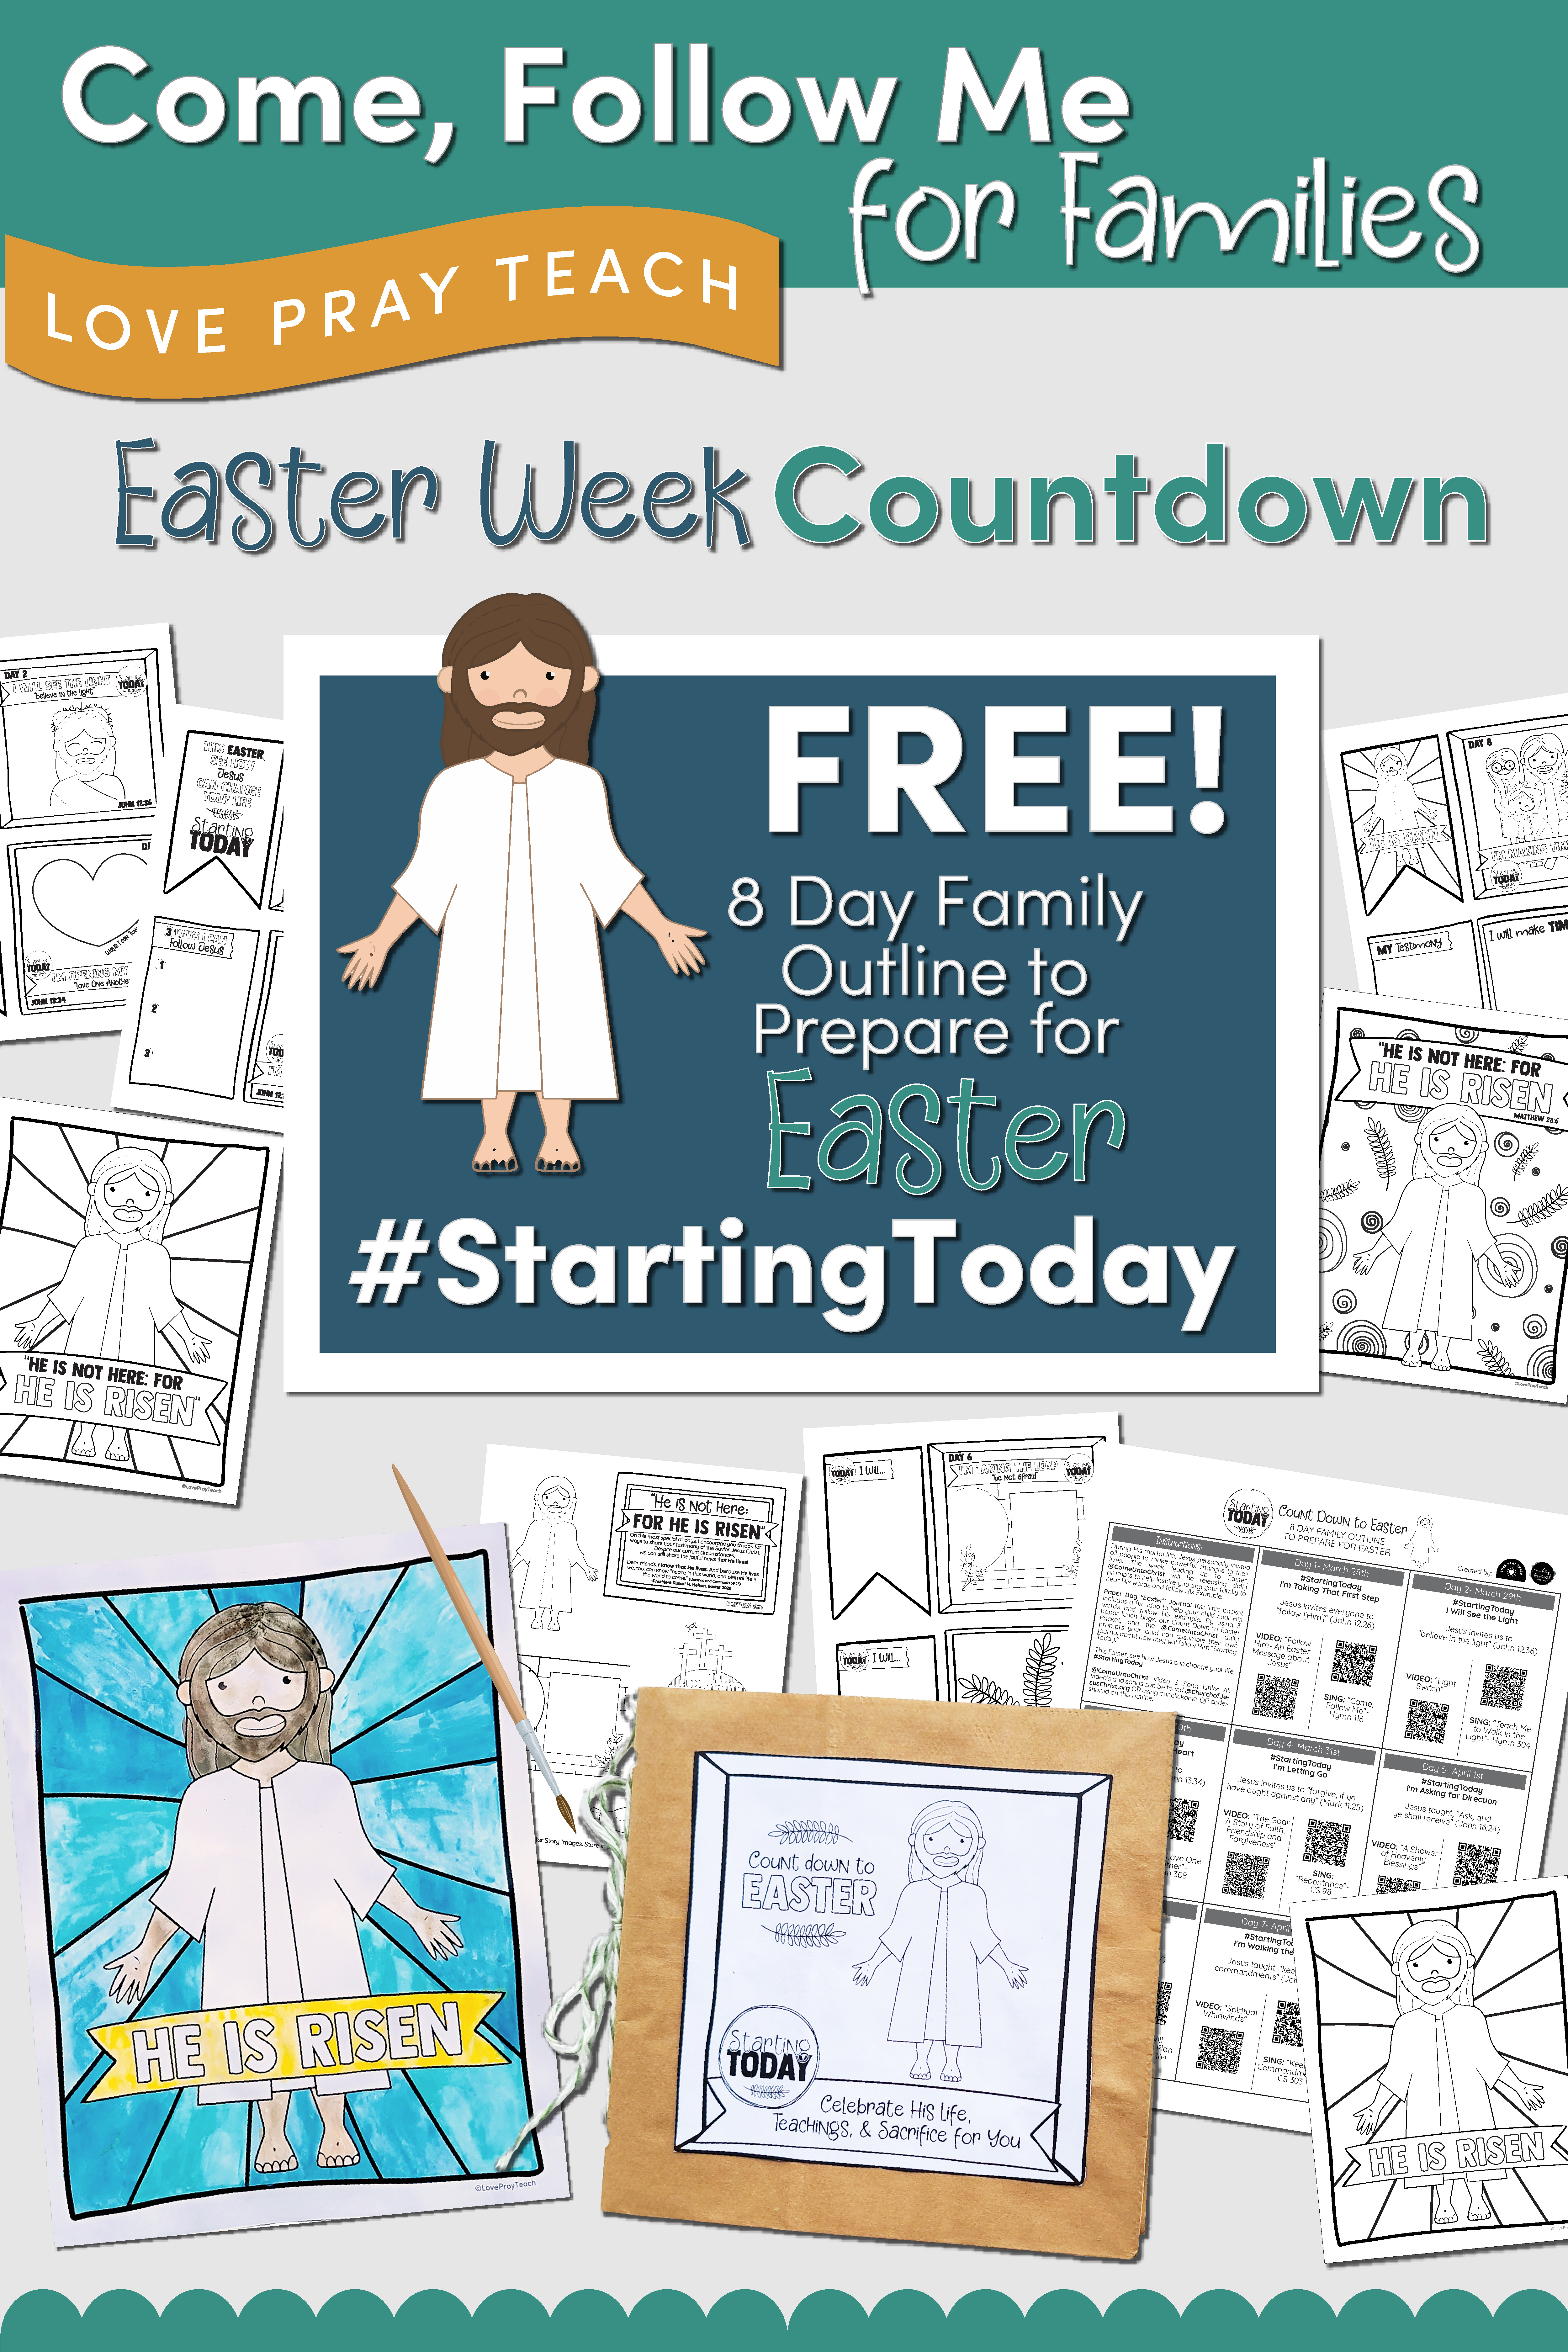 eight-day-family-outline-prepare-easter-2021